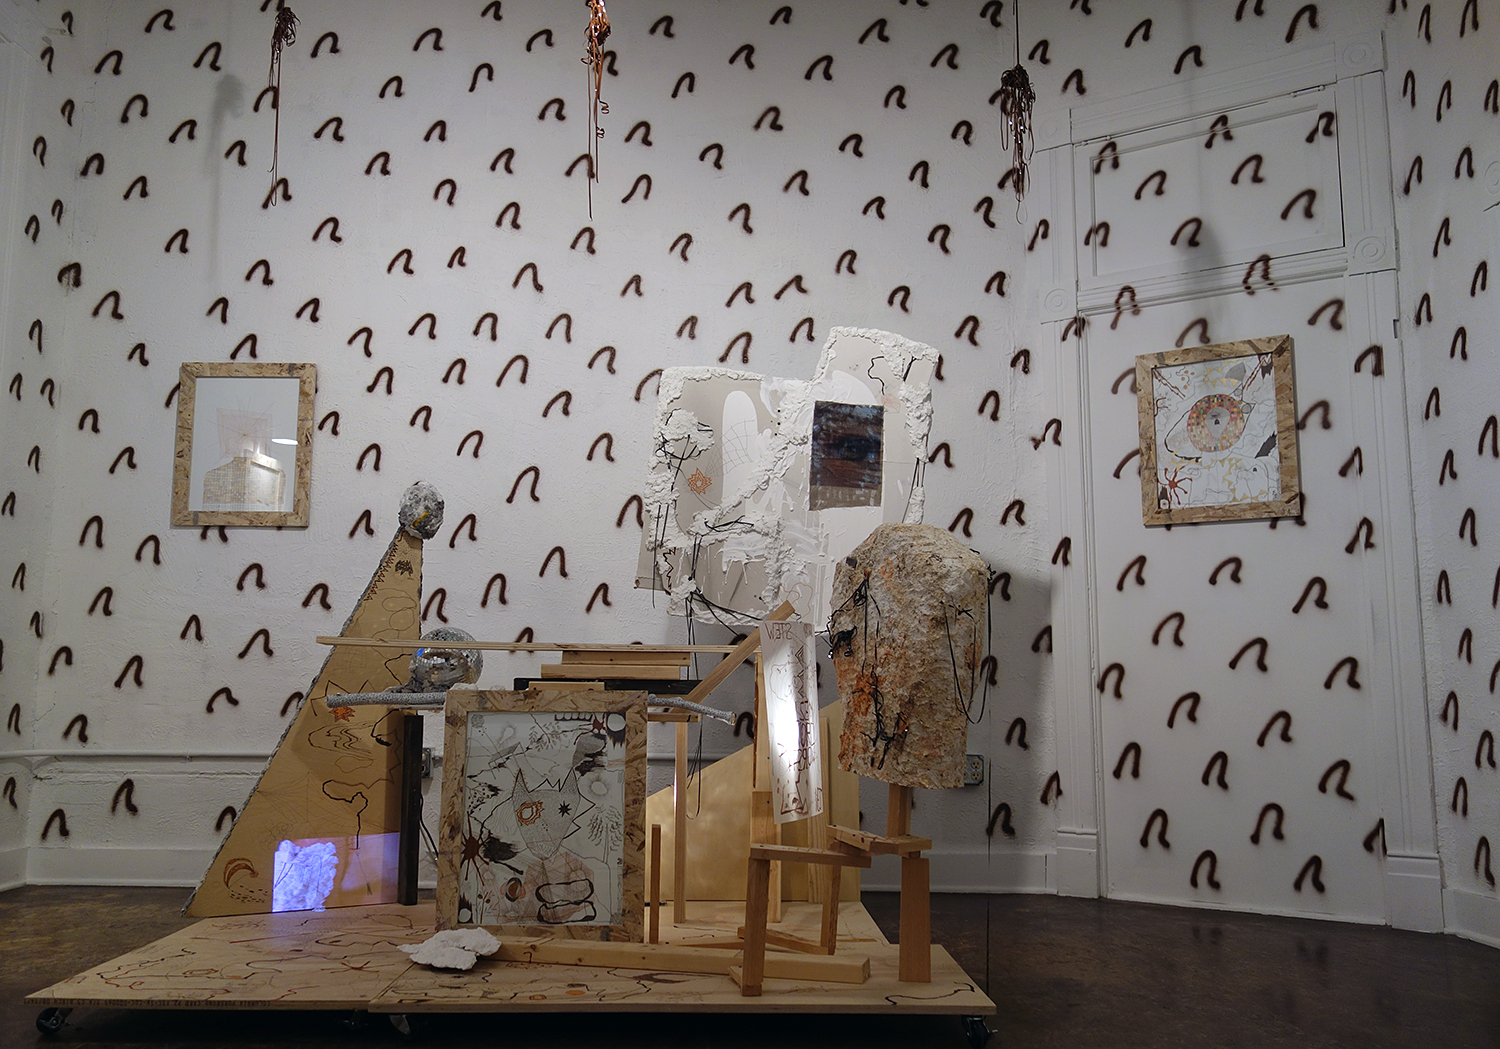 "anthony hawley // loculus // 2012-15 // installation // 71"" x 76"" x 52"" // media: wood, ink, paper-mache, cassette tape, plaster, foam, drywall, linen, inkjet print, thread, book-binding thread, disco balls, light, gesso, tree branch, pico projector, video projection, paper, duralar, wheels + hardware"